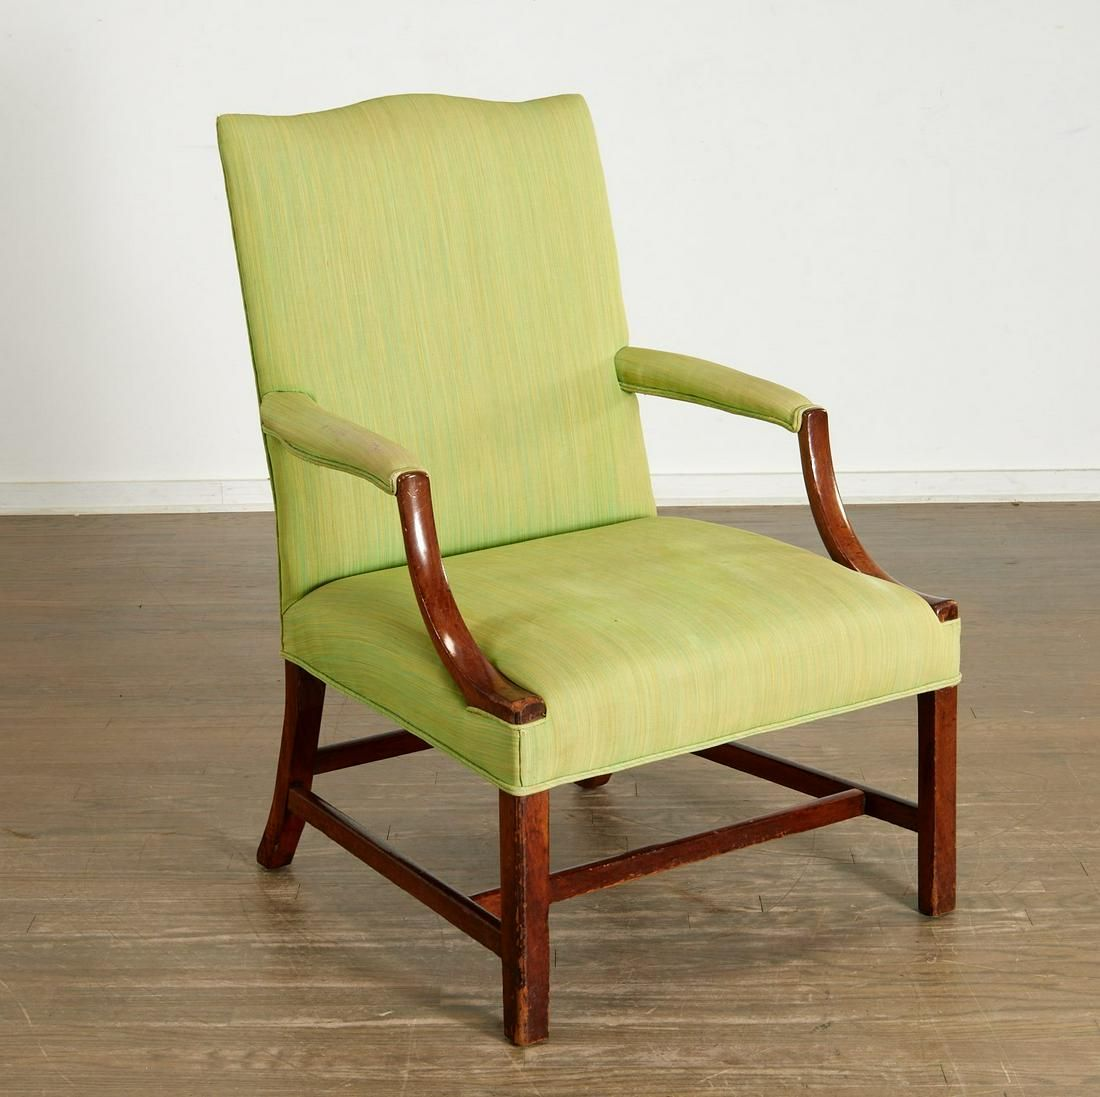 American Chippendale mahogany lolling chair